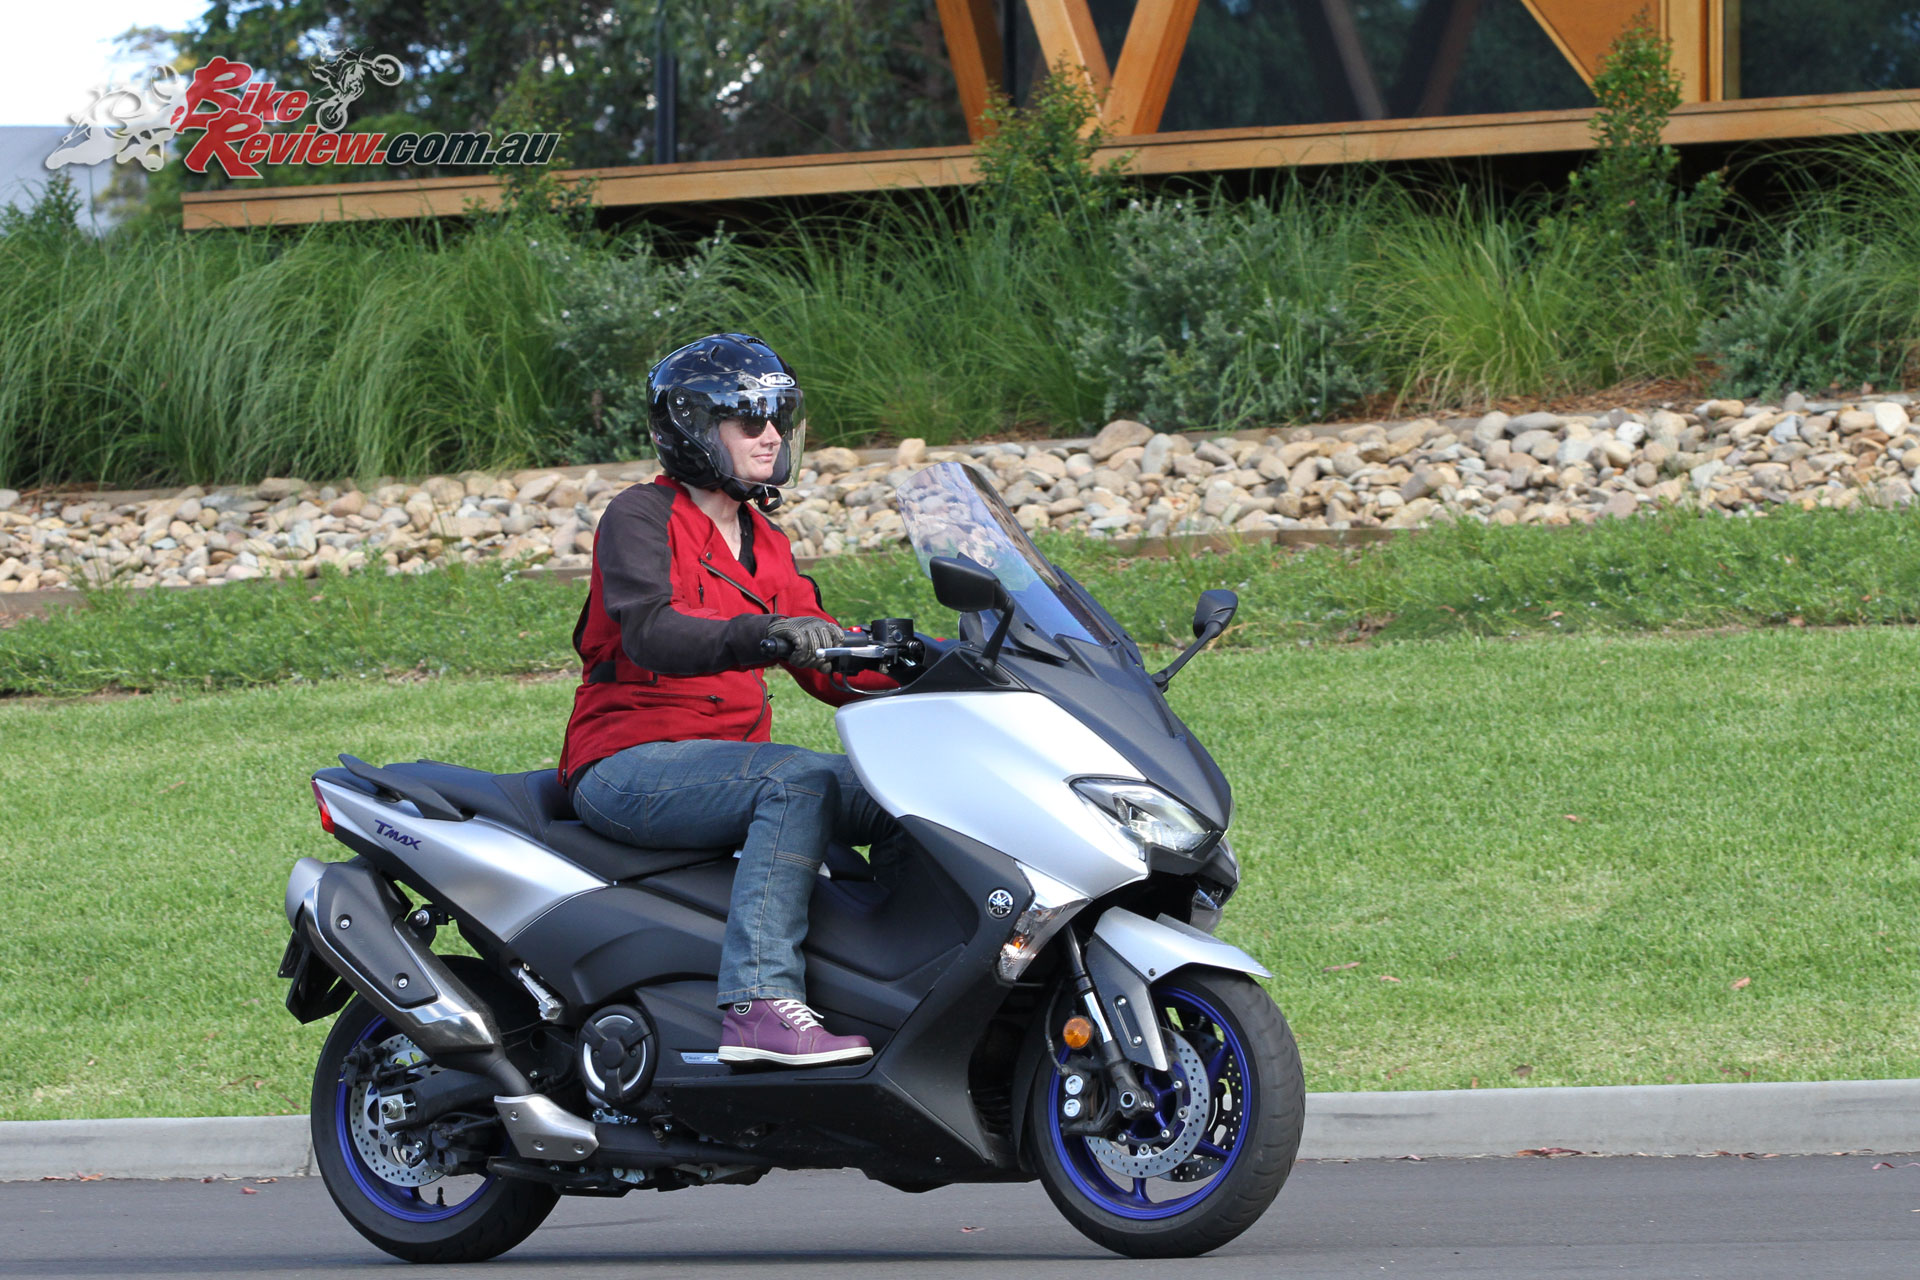 A low centre of gravity and smooth acceleration make the TMax fun to ride